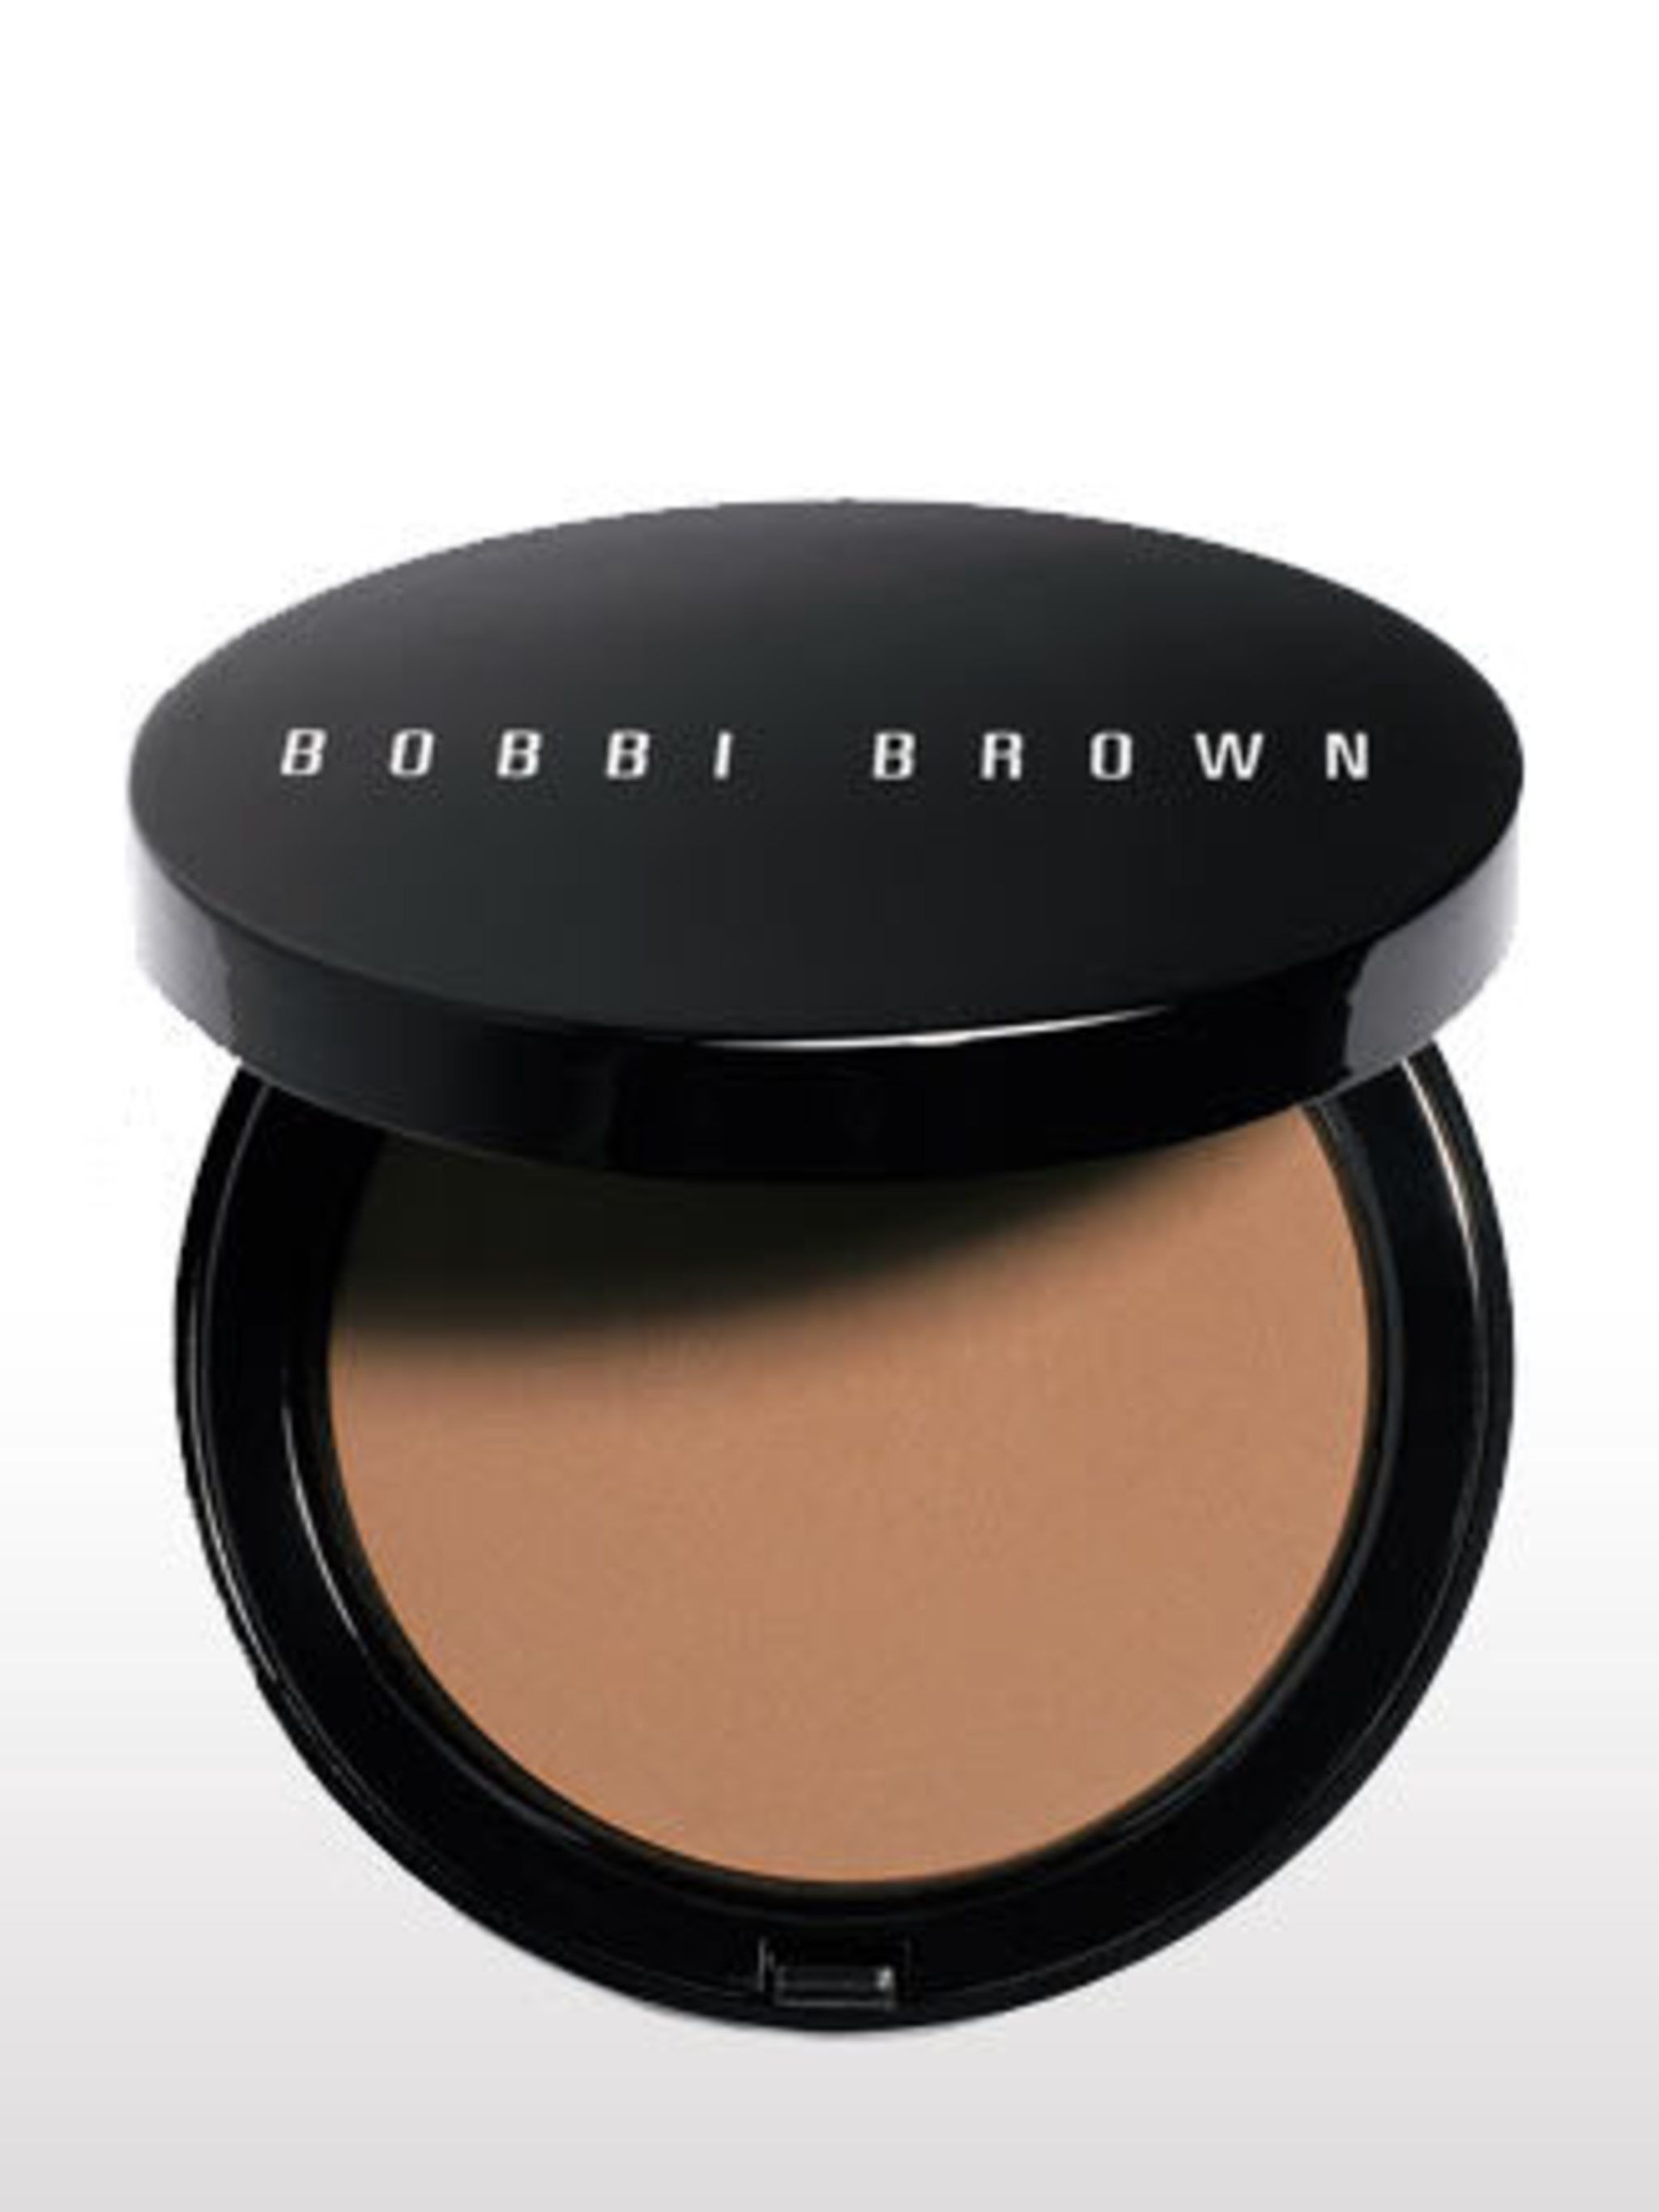 "<p>This is the perfect shade for my skin and stays firmly put all day.</p><p><a href=""http://www.bobbibrown.co.uk/product/2324/8166/Makeup/Cheeks/Bronzers/Bronzing-Powder/index.tmpl"">Bobbi Brown</a> Bronzing Powder, £26</p>"